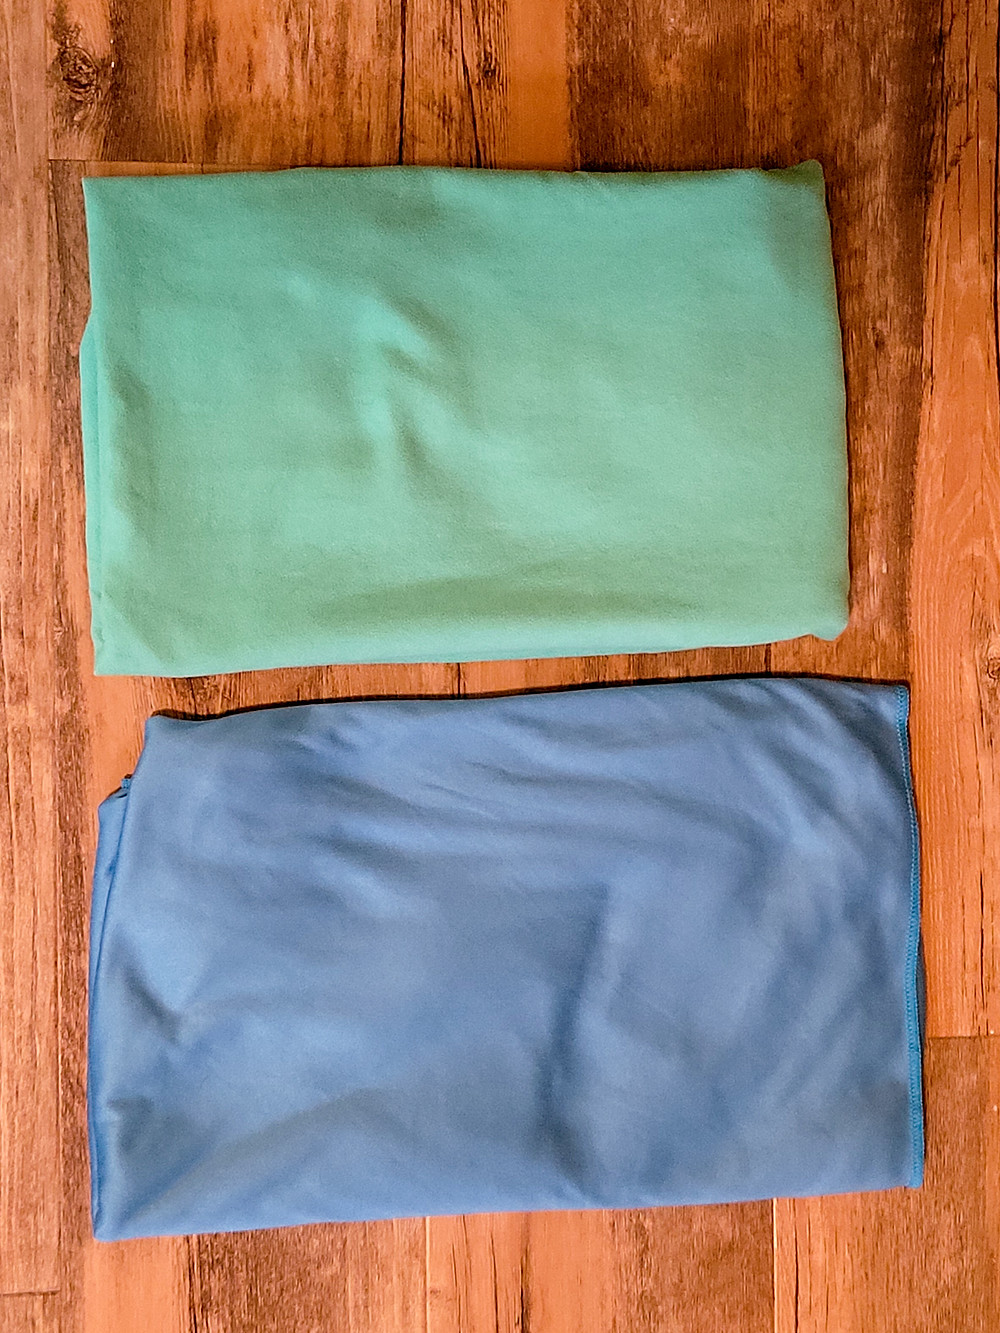 Backpacking, travel, travel gear, travel tips, travel towels